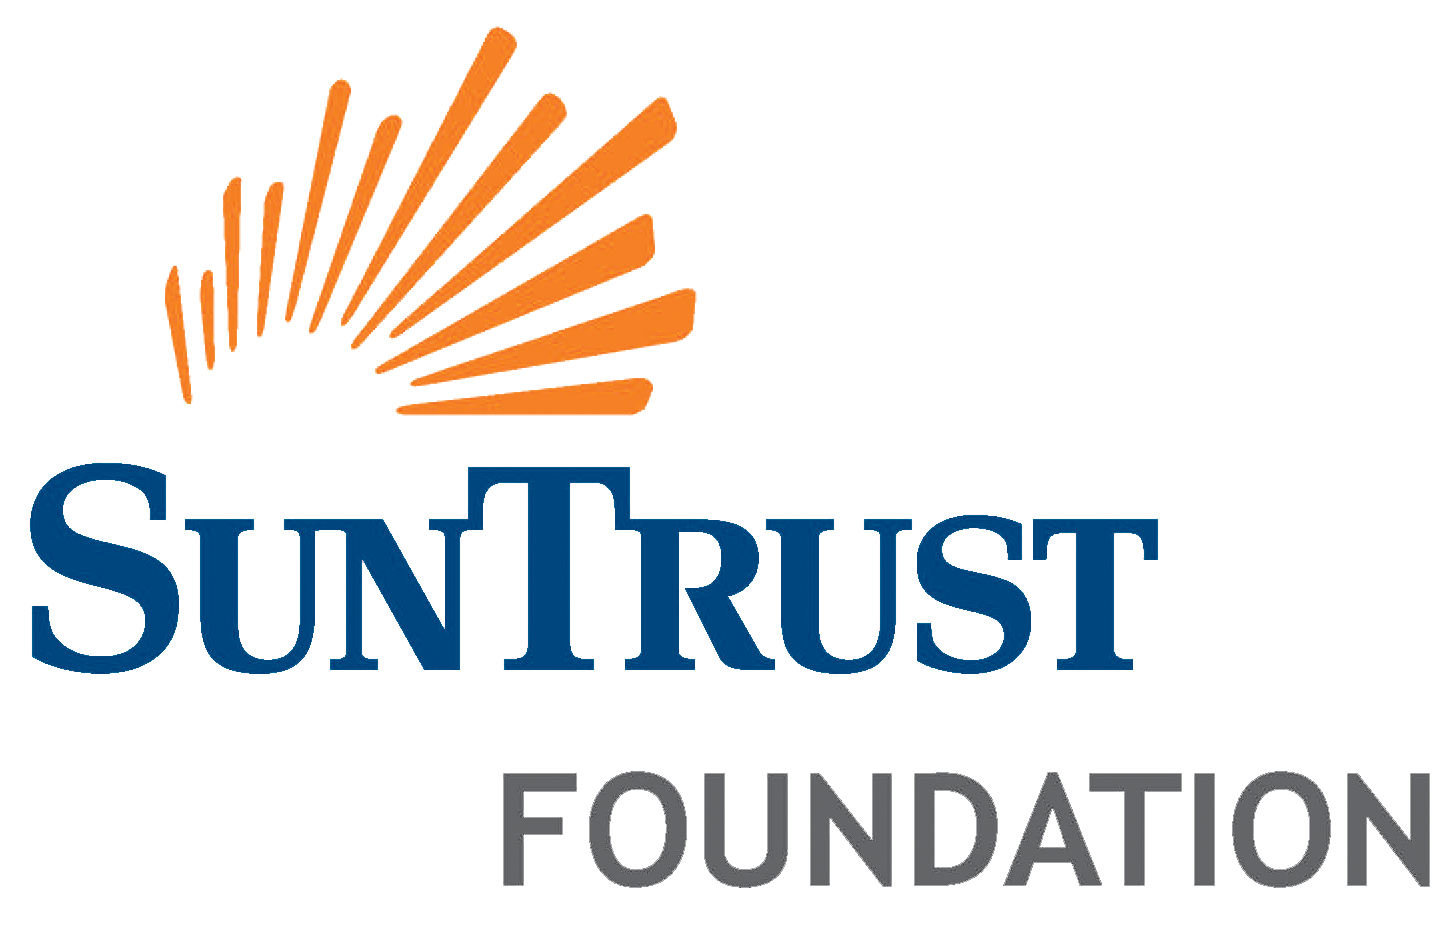 SunTrust Foundation